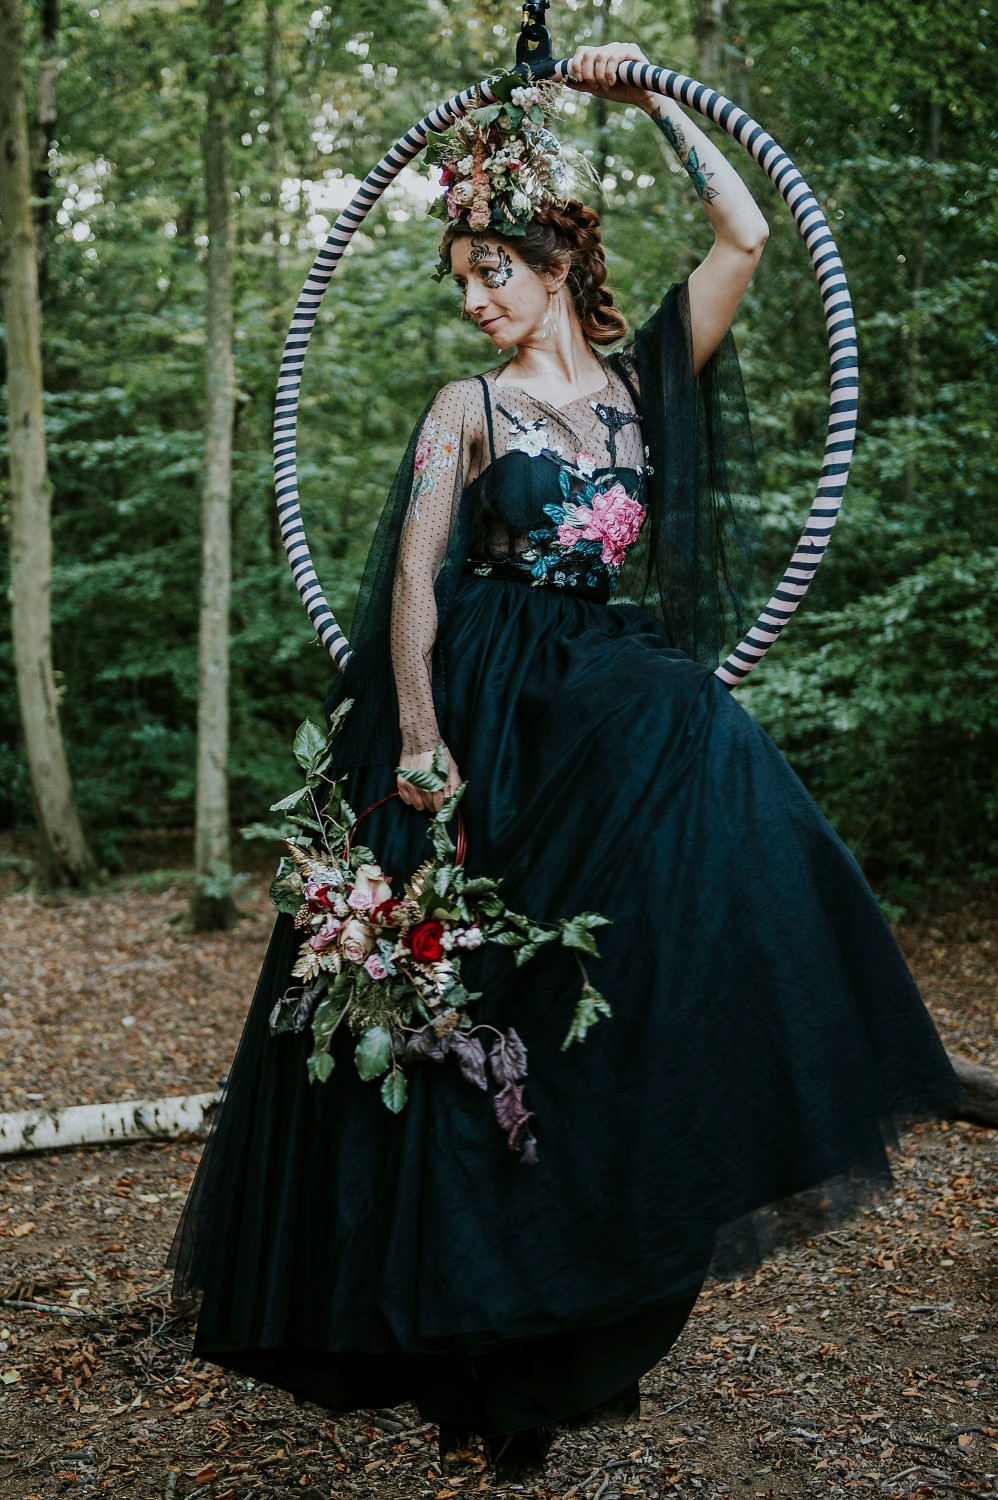 circus wedding - aerial performer bride - black wedding dress - alternative wedding dress - unique bridal wear